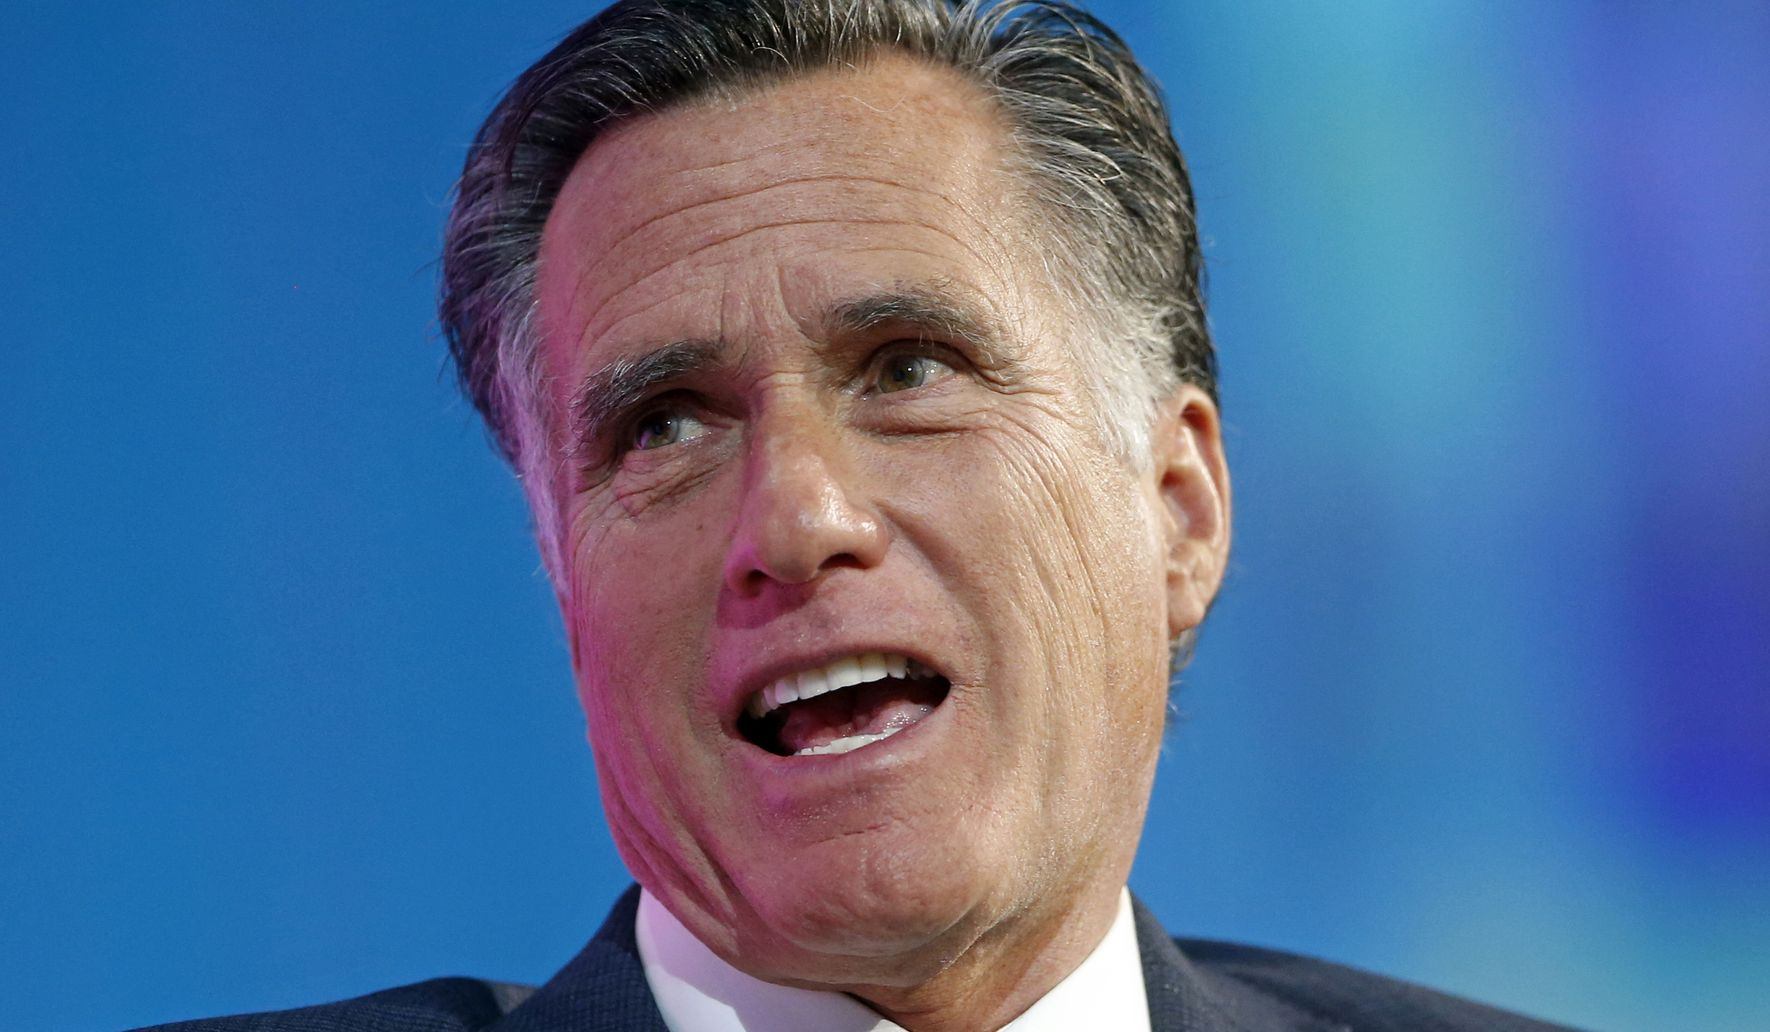 Mitt Romney voted for his wife, not Donald Trump, for president?!